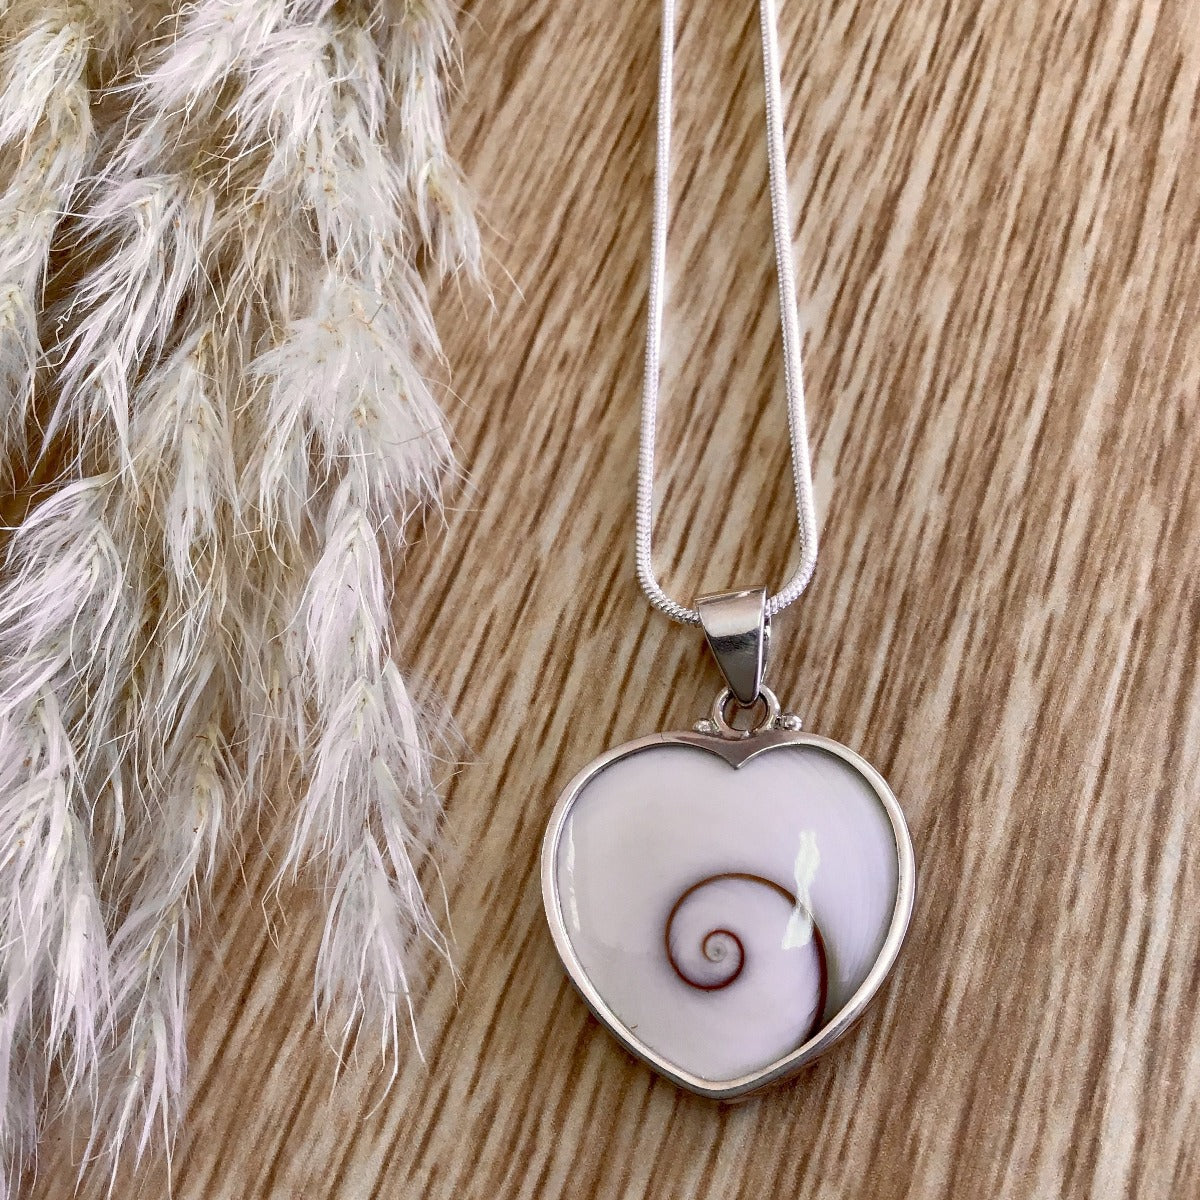 jade kiwi kaikoura sterling silver cats eye necklace pendant heart koru